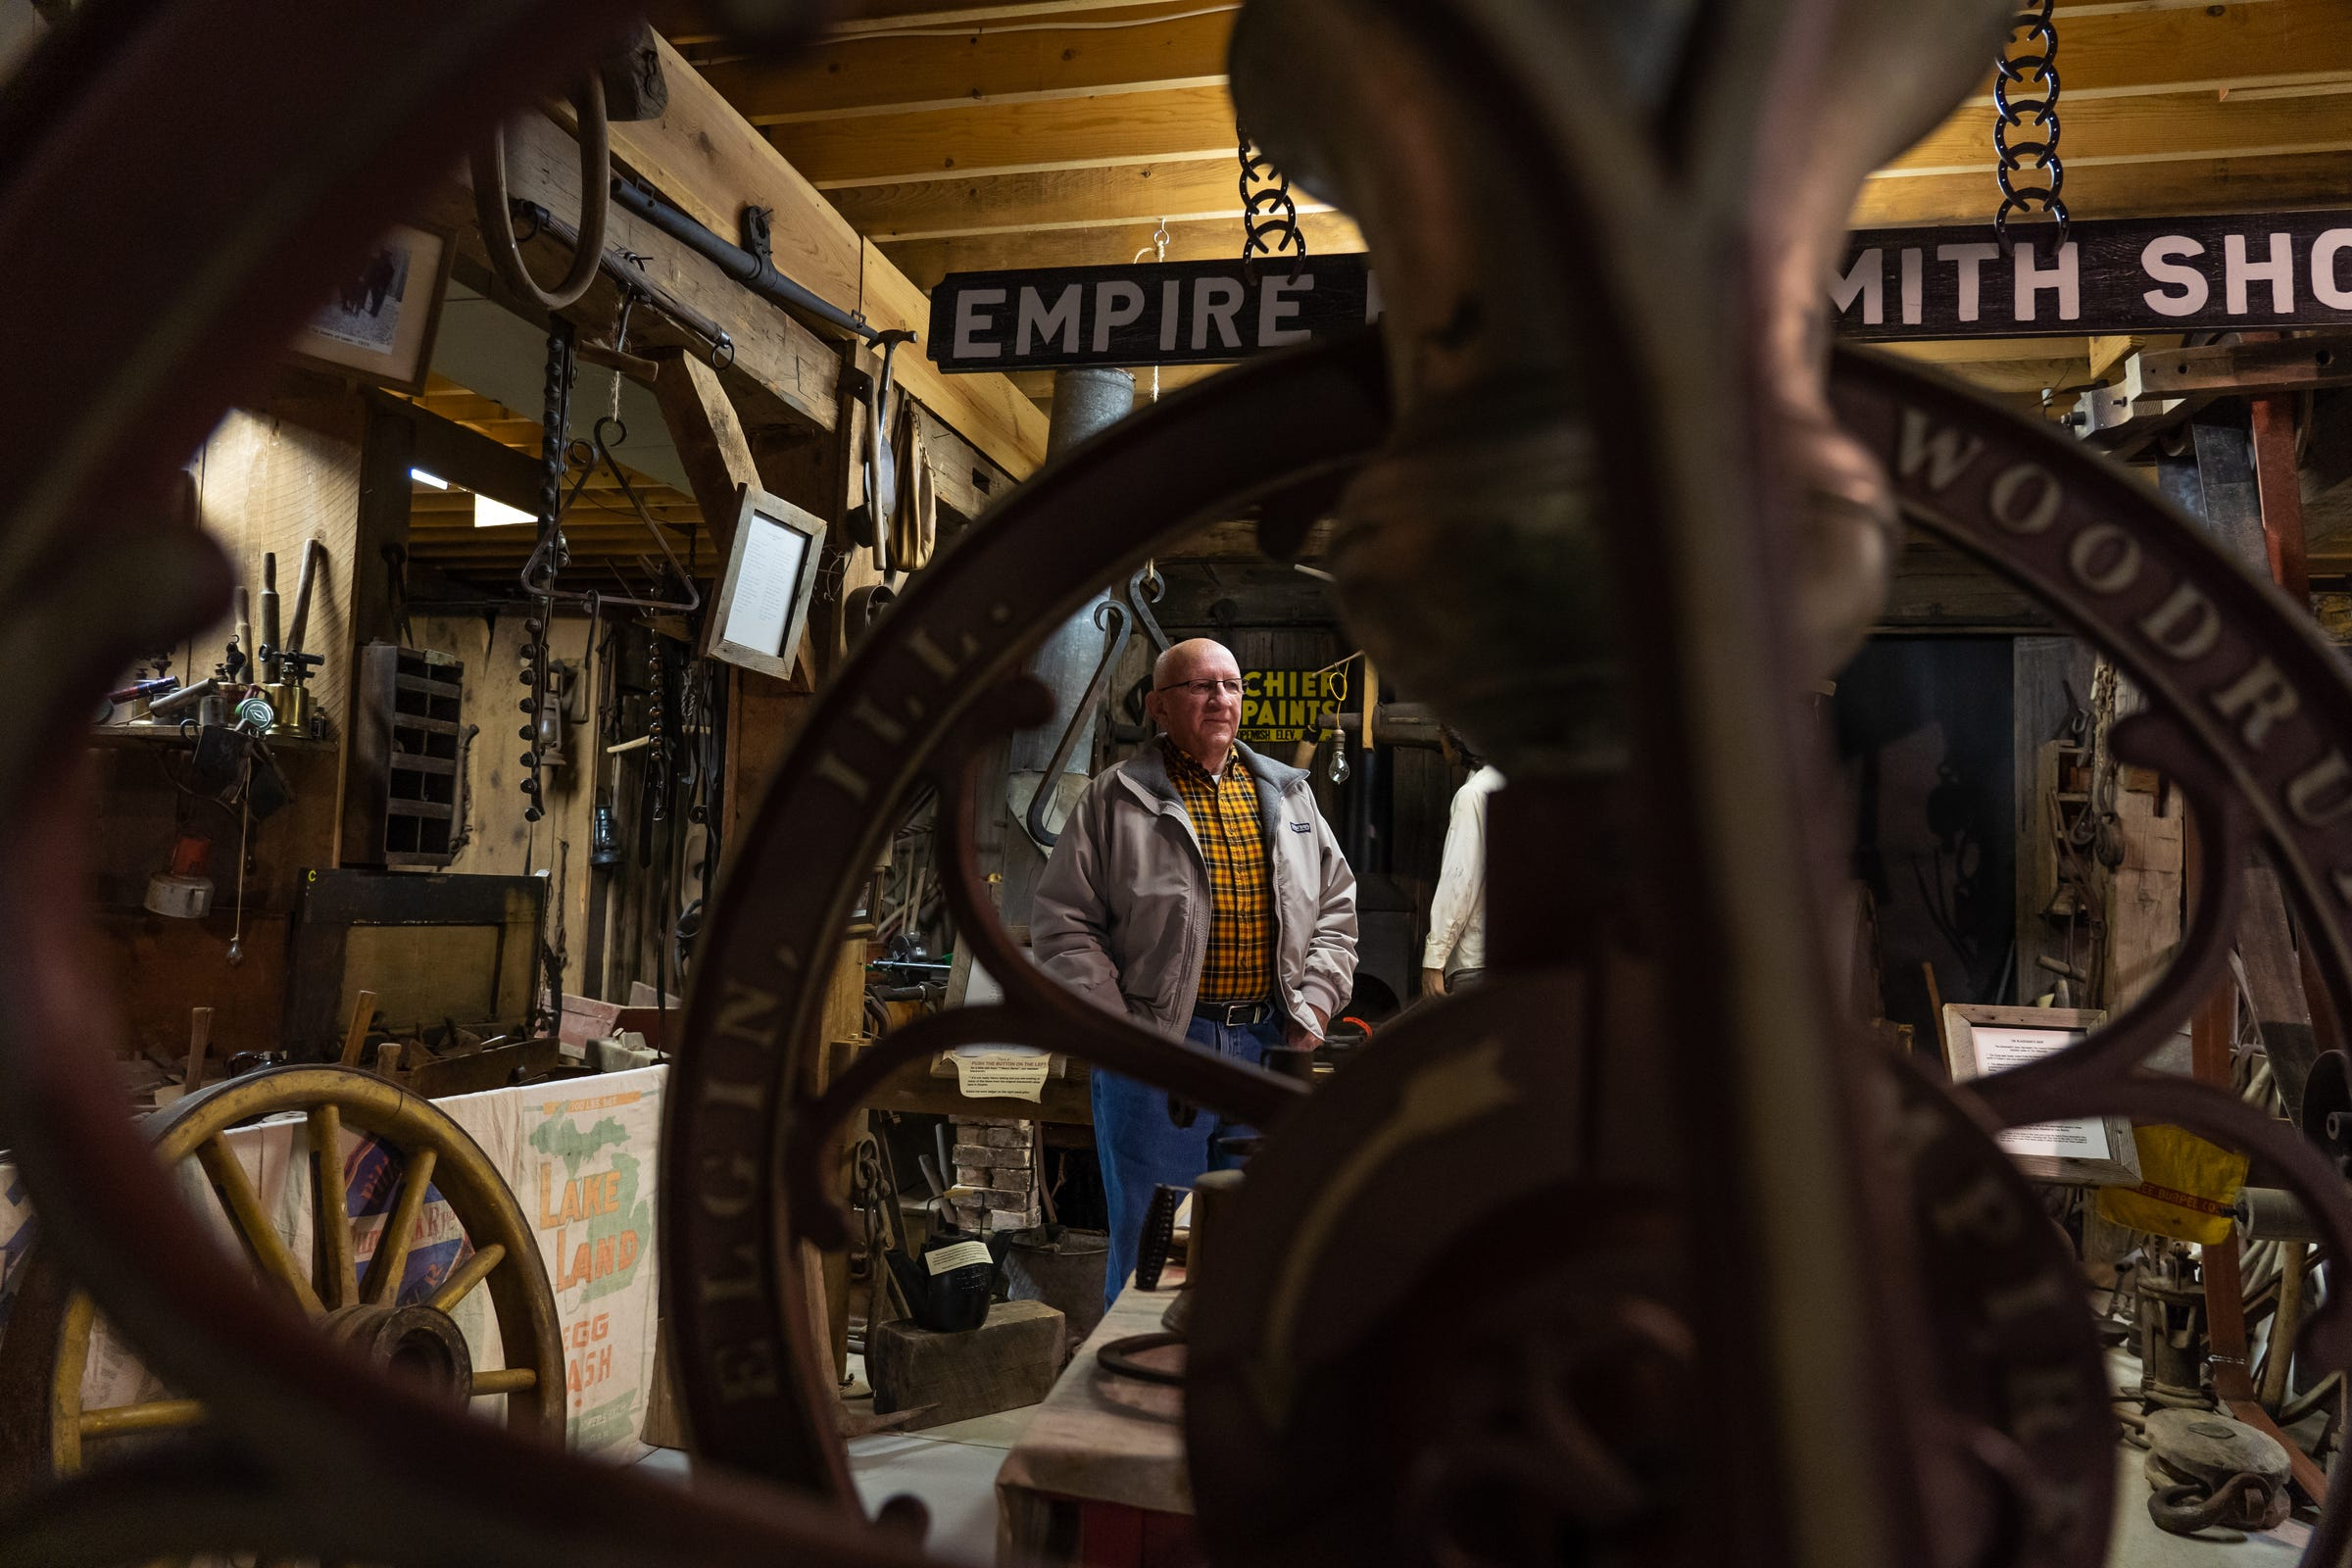 """Empire Area Heritage Group President Dave Taghon stands inside the village's historical museum on Wednesday, Nov. 8, 2019. """"To me, I think it's important to save our history, to know where you've been, and then decide maybe your path forward,"""" he said."""